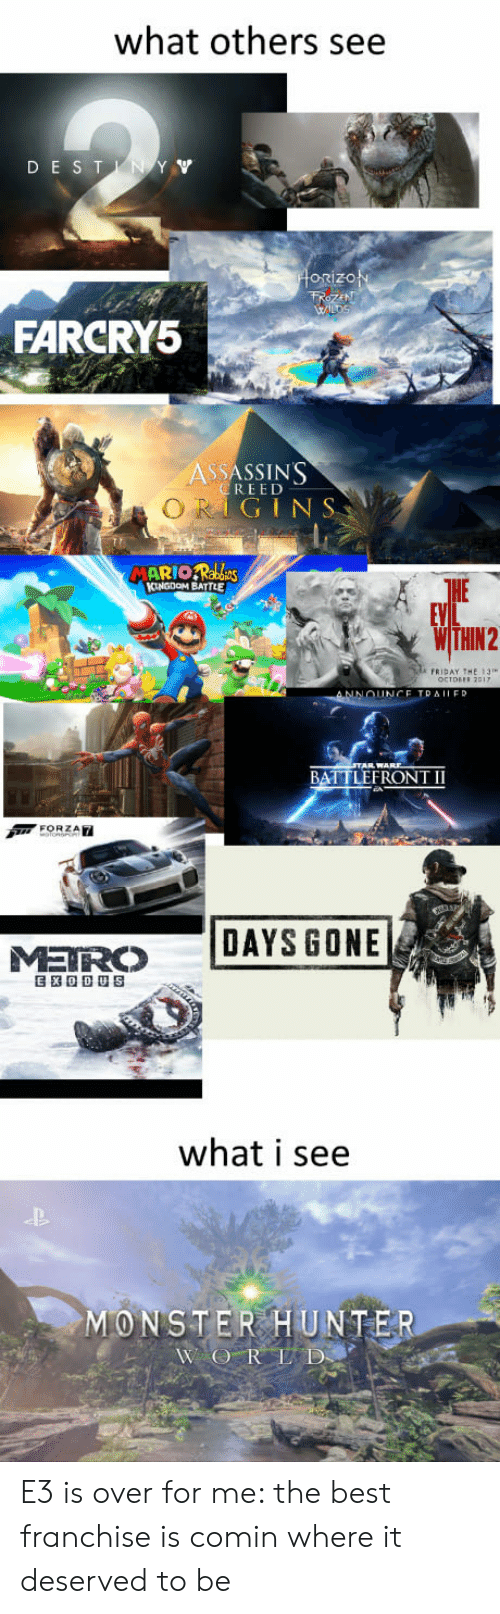 monster hunter: what others see  DE ST  orizo  FARCRY5  ASSASSIN'S  REED  GINS  HE  FRIDAY THE 13  BATTLEFRONT II  MR DAYS GONE  what i see  MONSTER HUNTER E3 is over for me: the best franchise is comin where it deserved to be